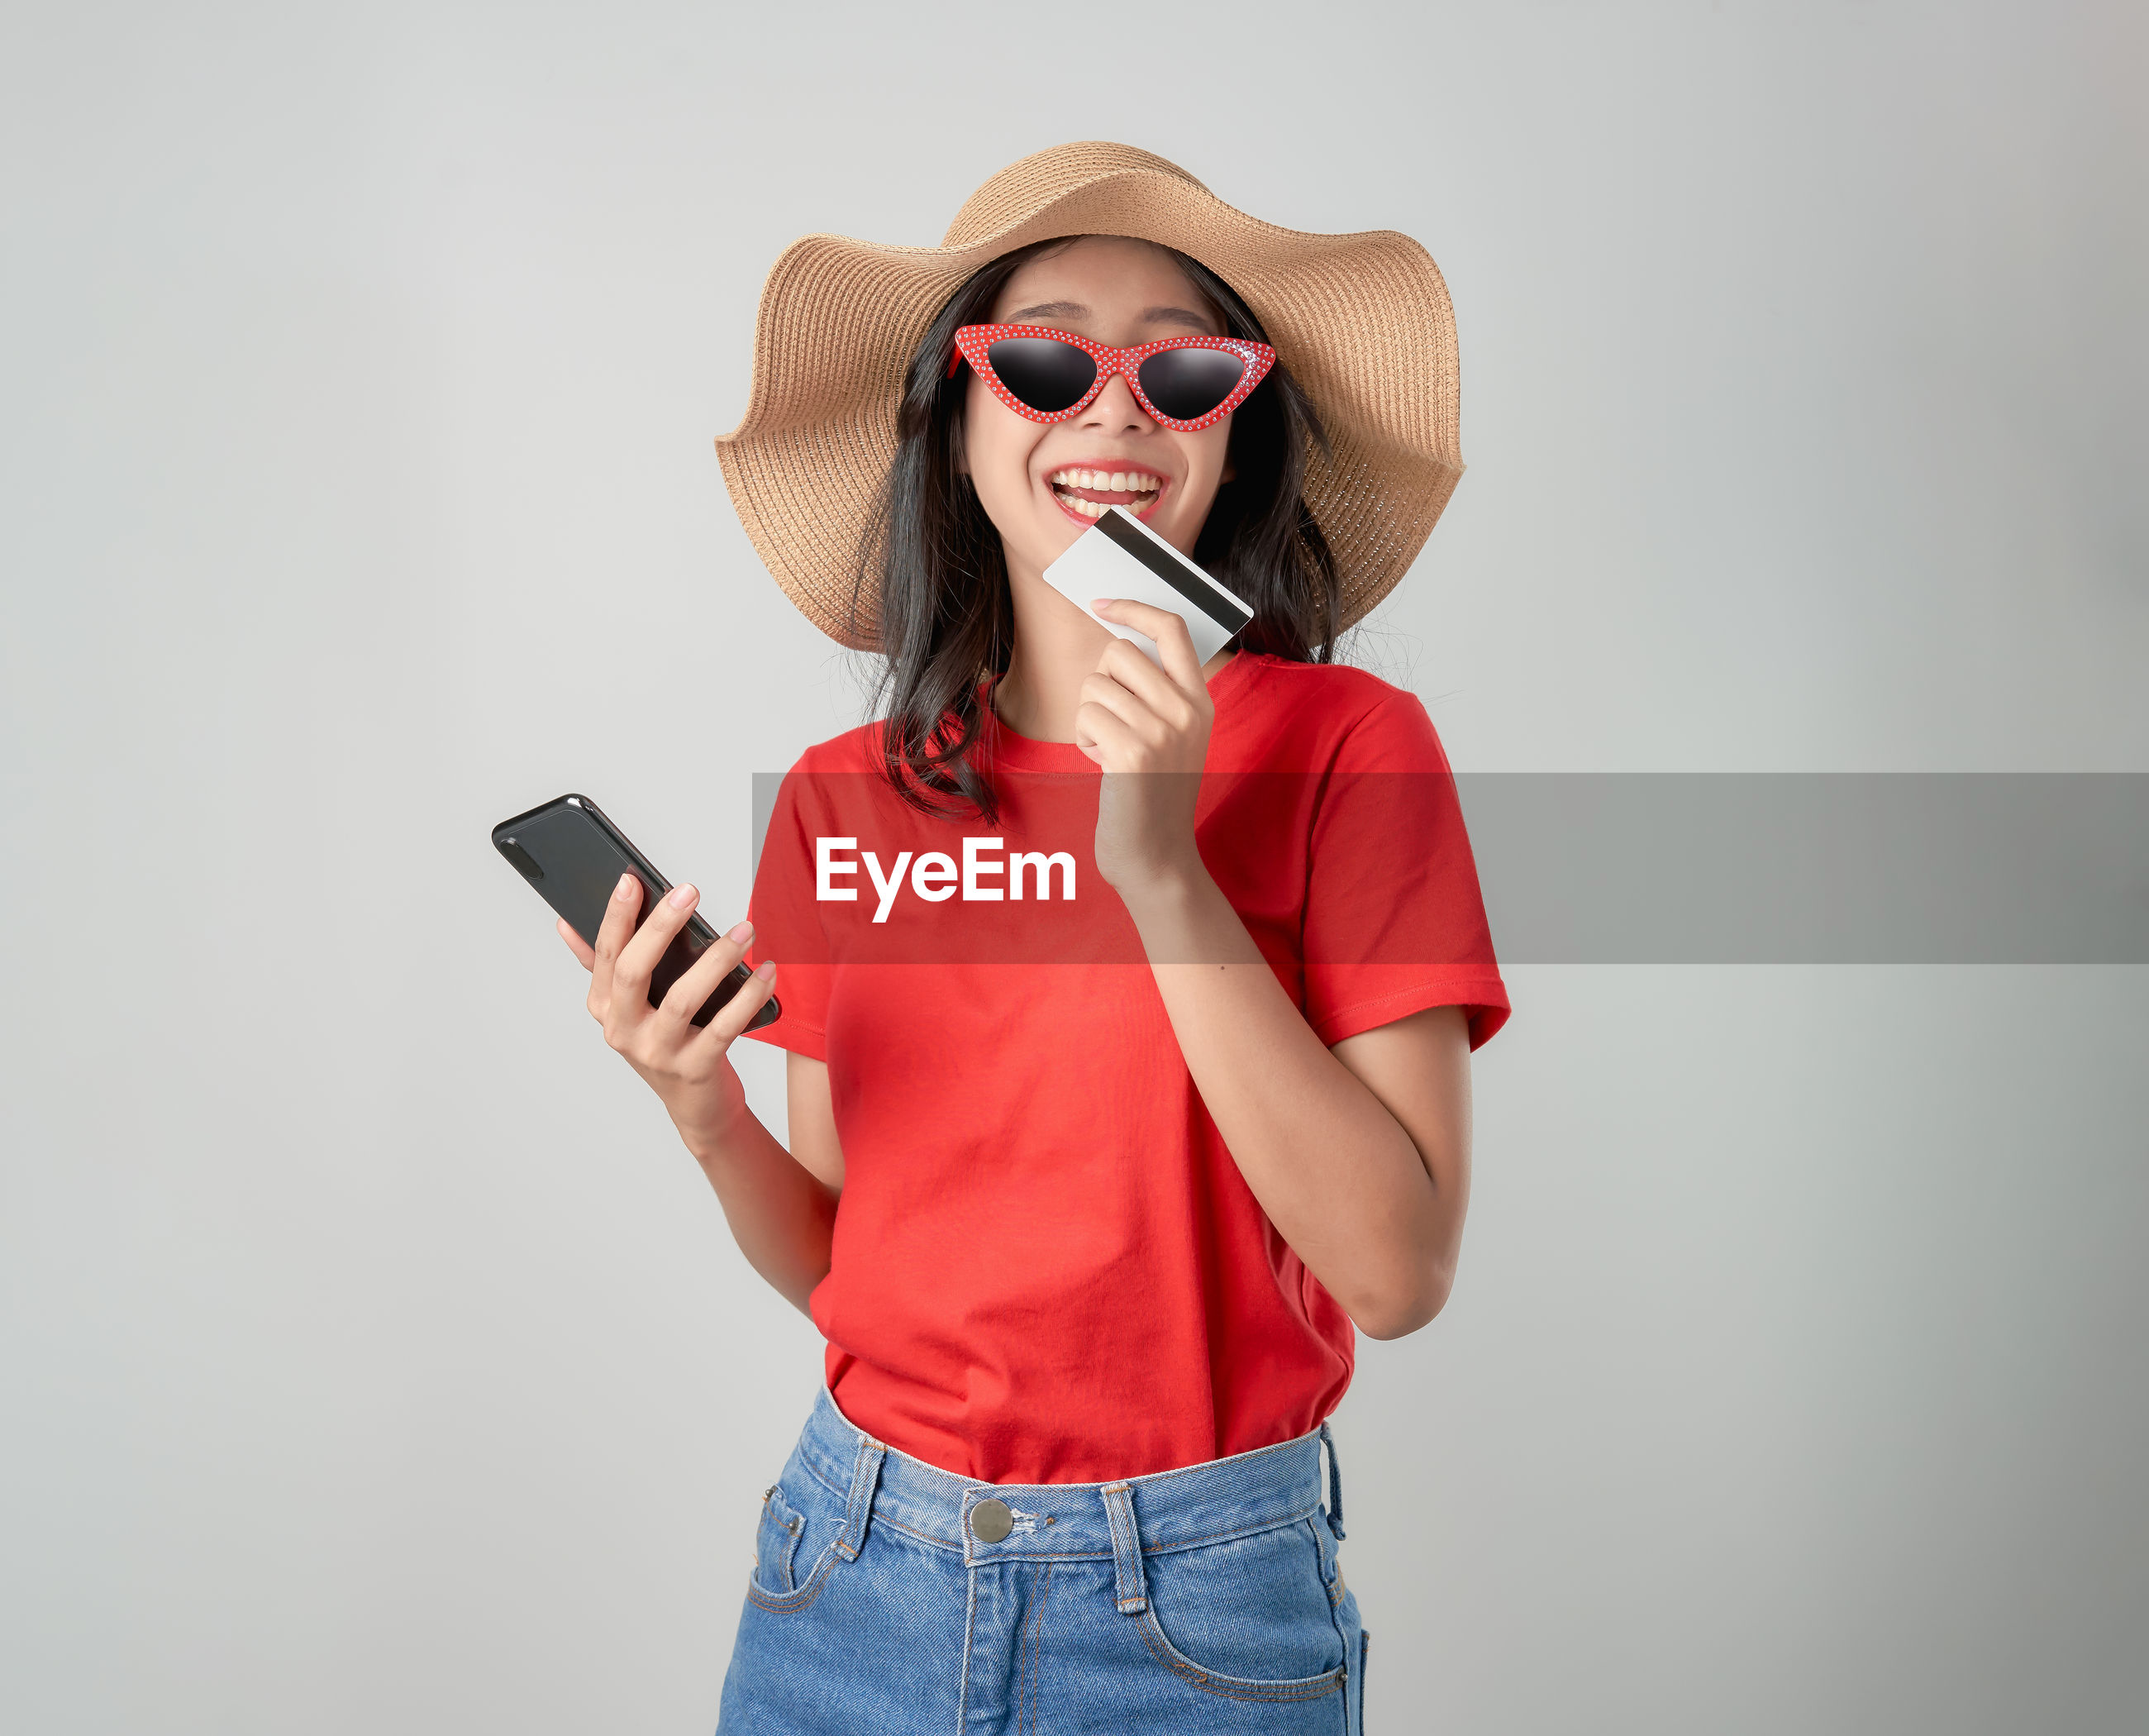 Portrait of young woman holding credit card while using phone against gray background